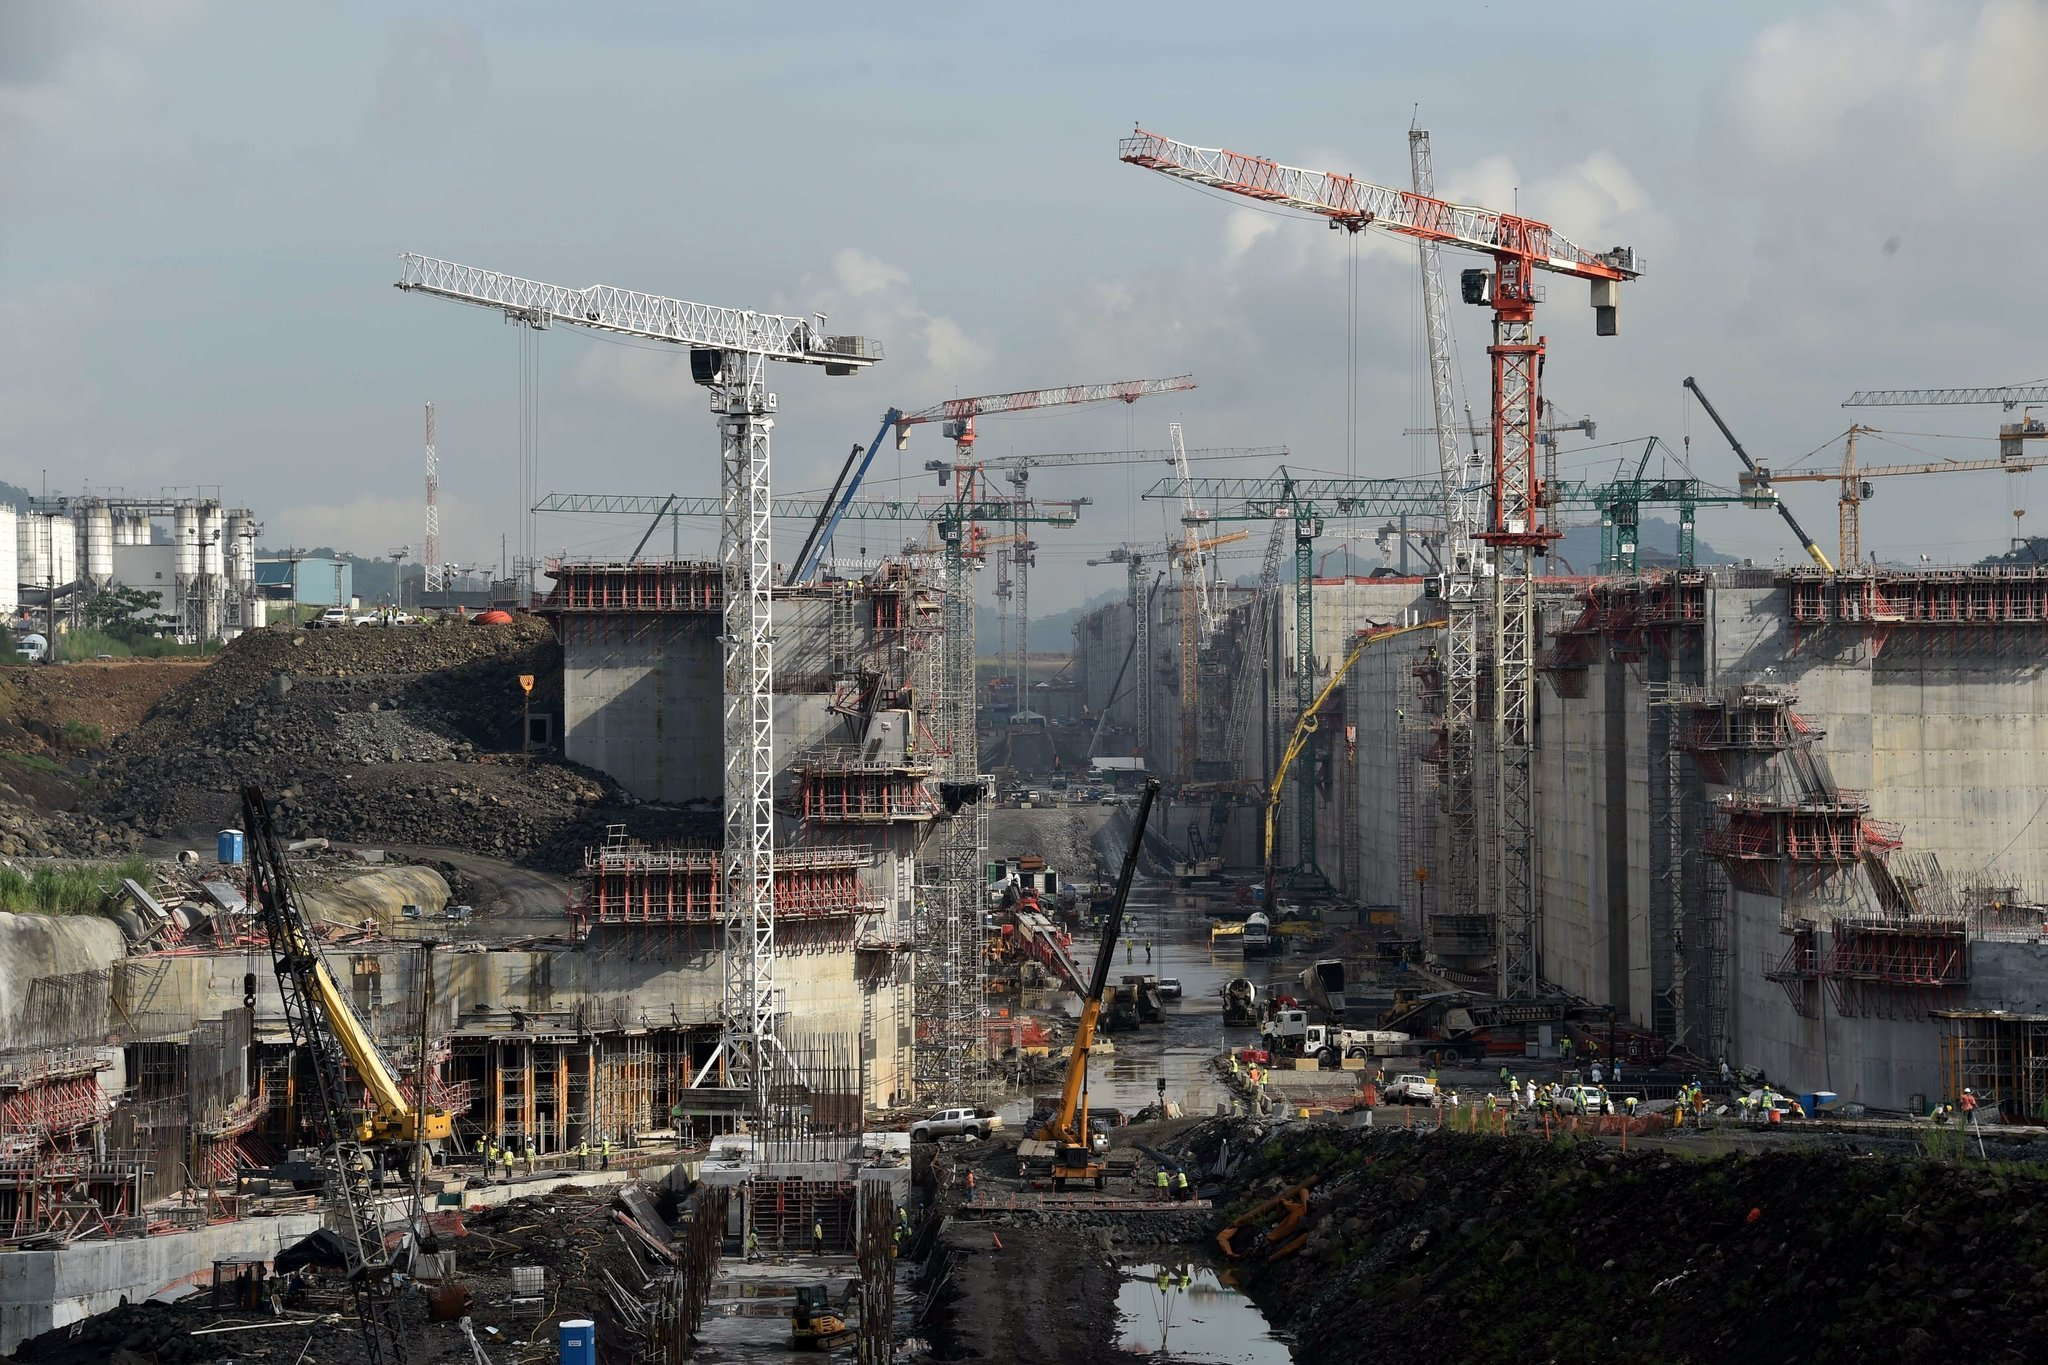 construction of the new Panama Canal locks